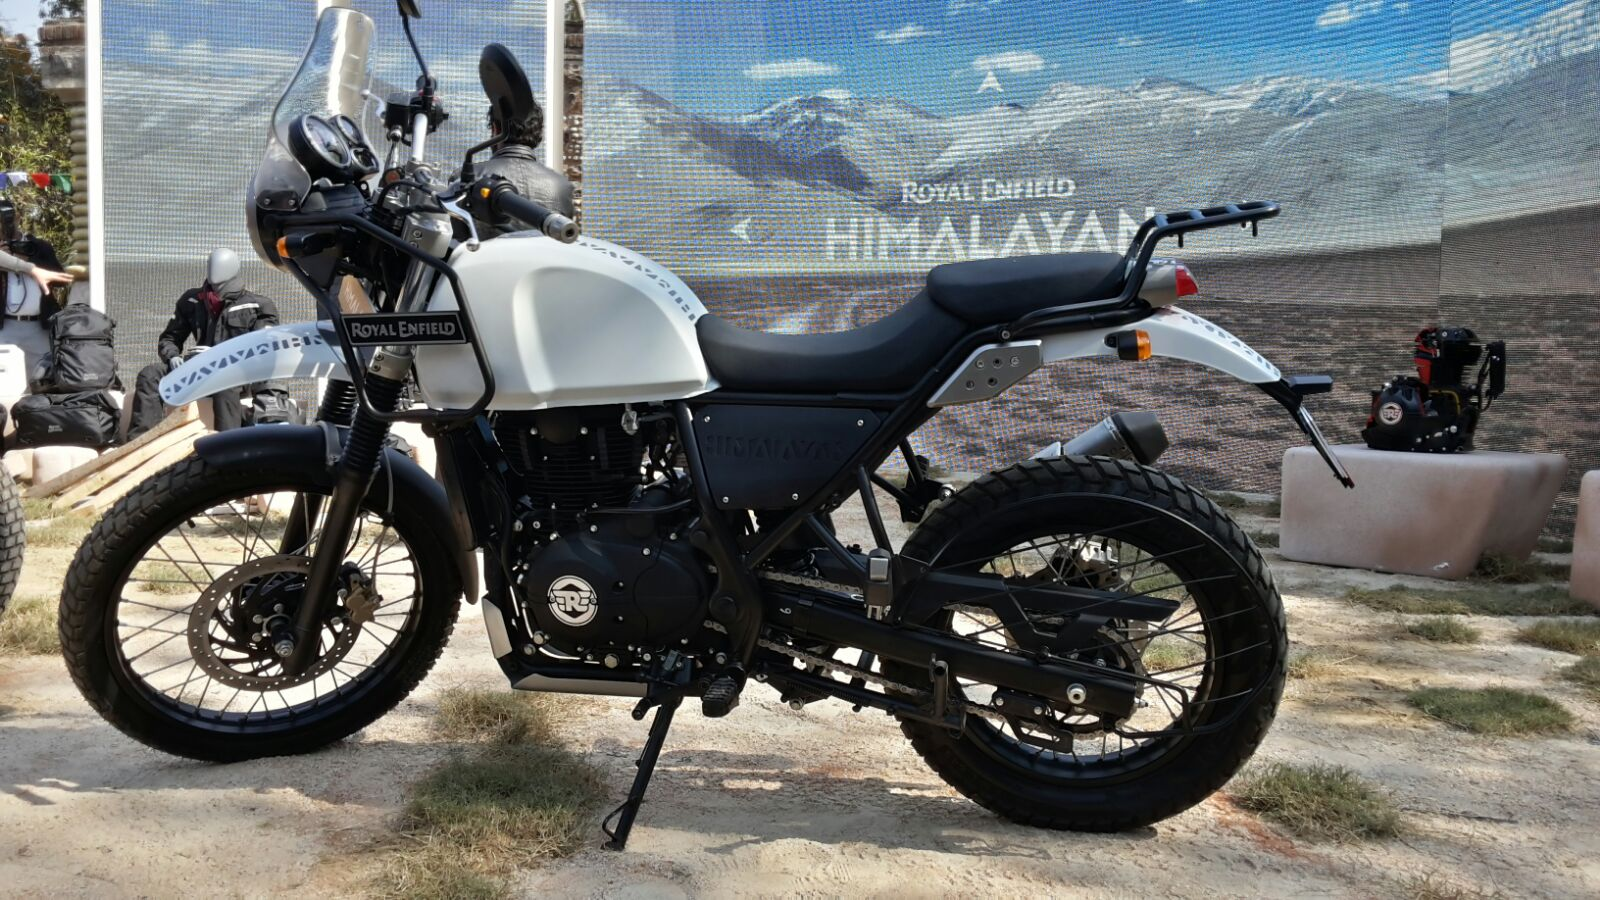 Royal Enfield Himalayan 750 Launch Date Price Specifications Mileage